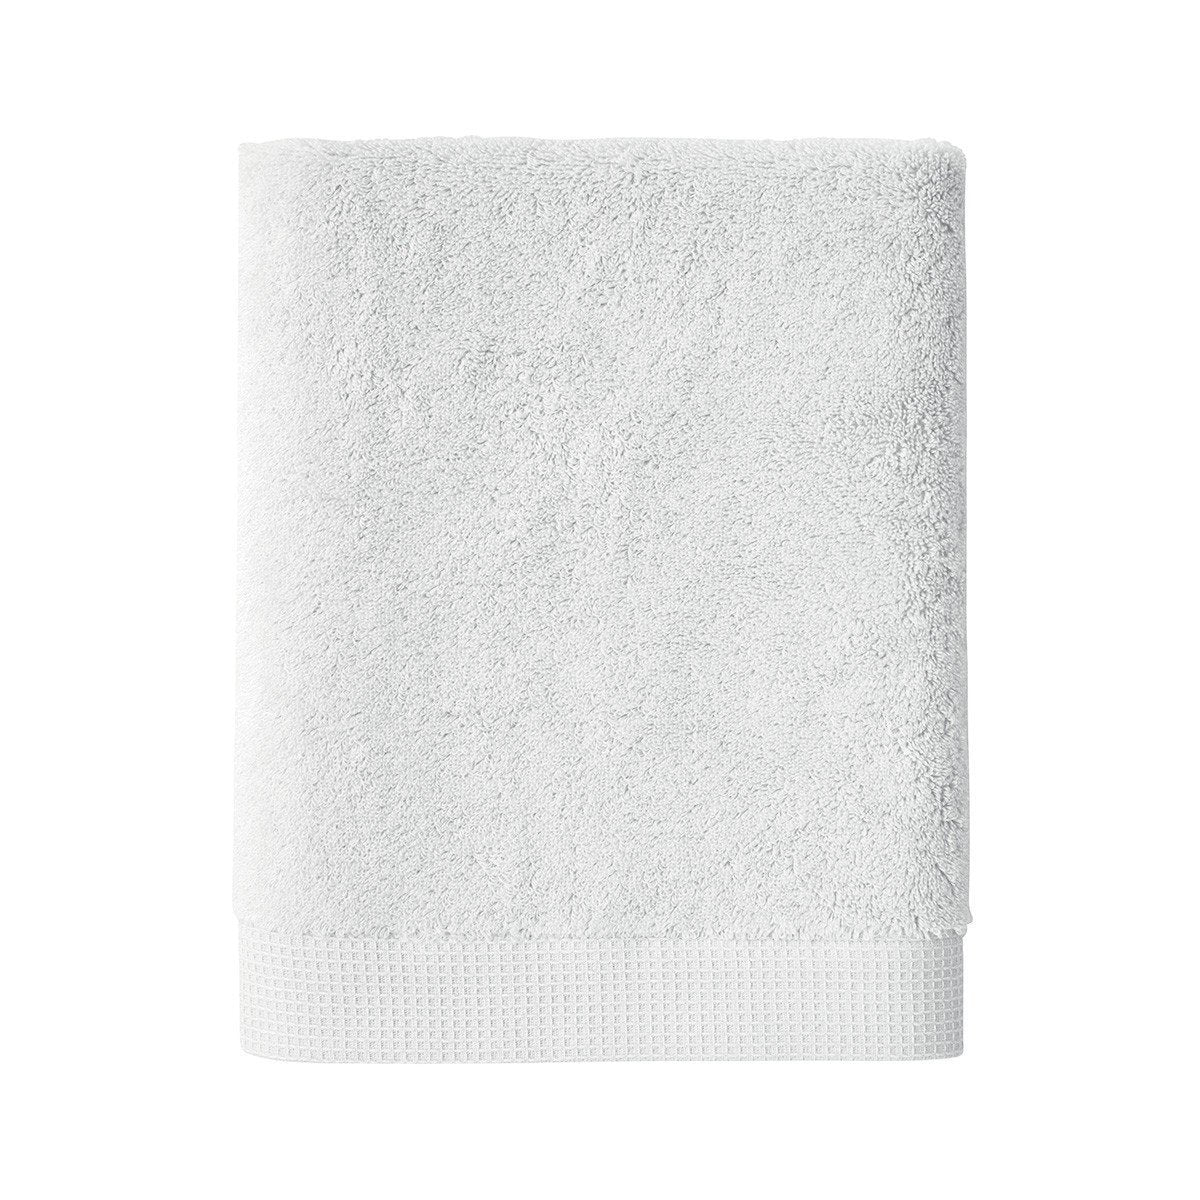 Astree Silver Bath Collection by Yves Delorme | Fig Linens - Light gray bath linen, towel